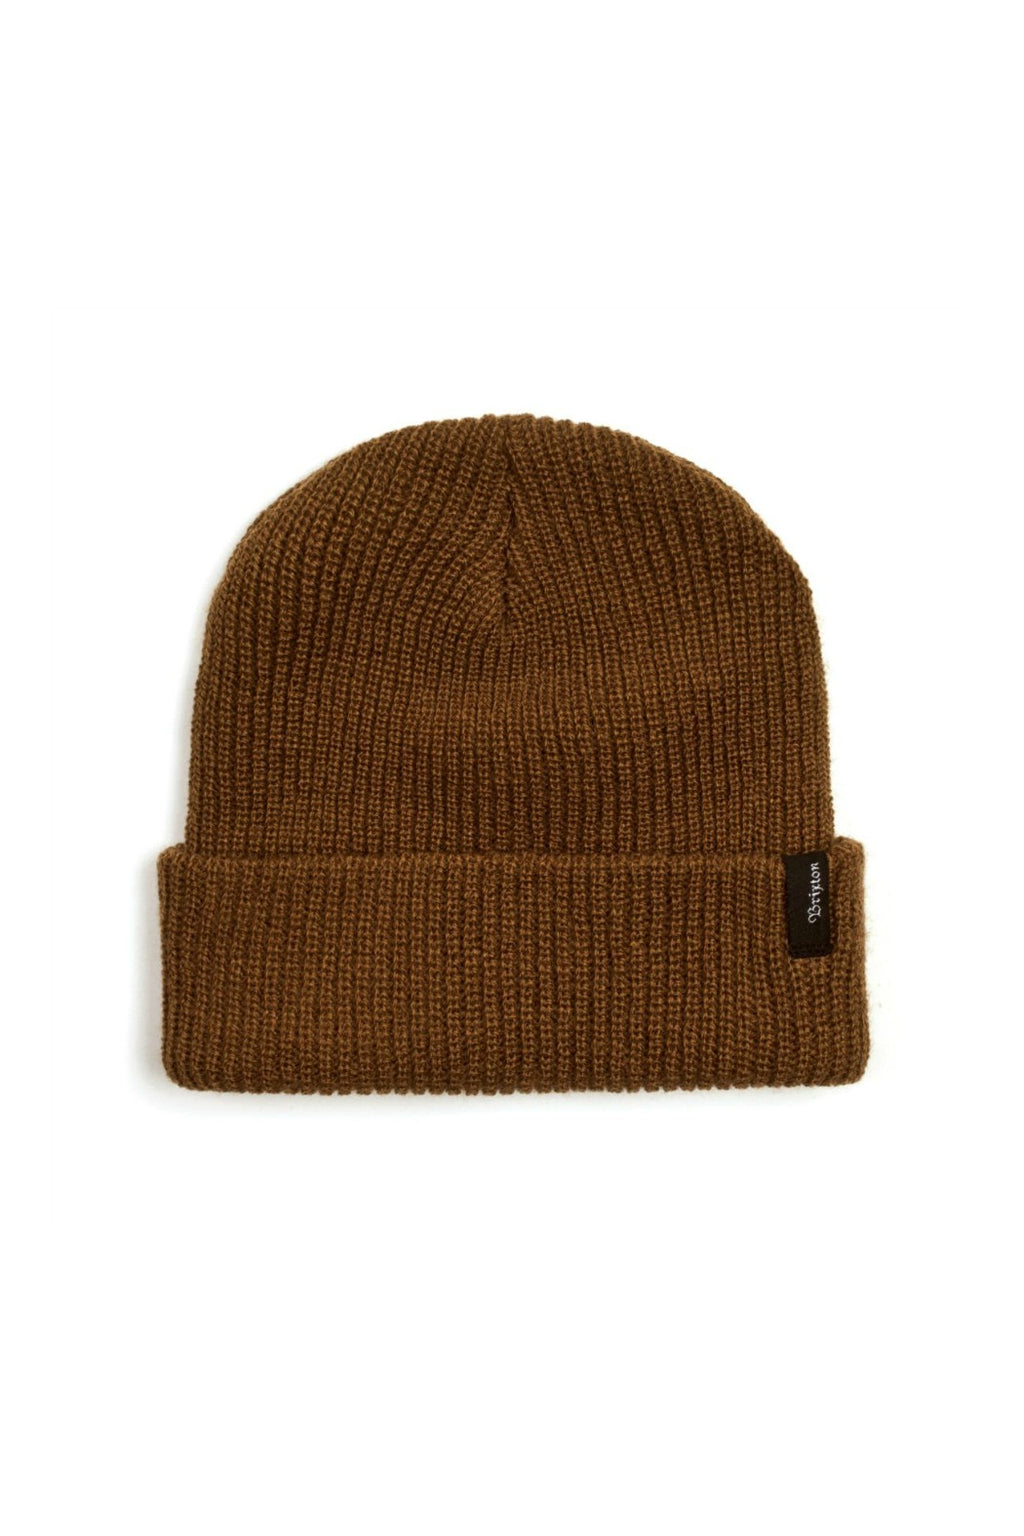 Brixton Heist Beanie in Coyote Brown